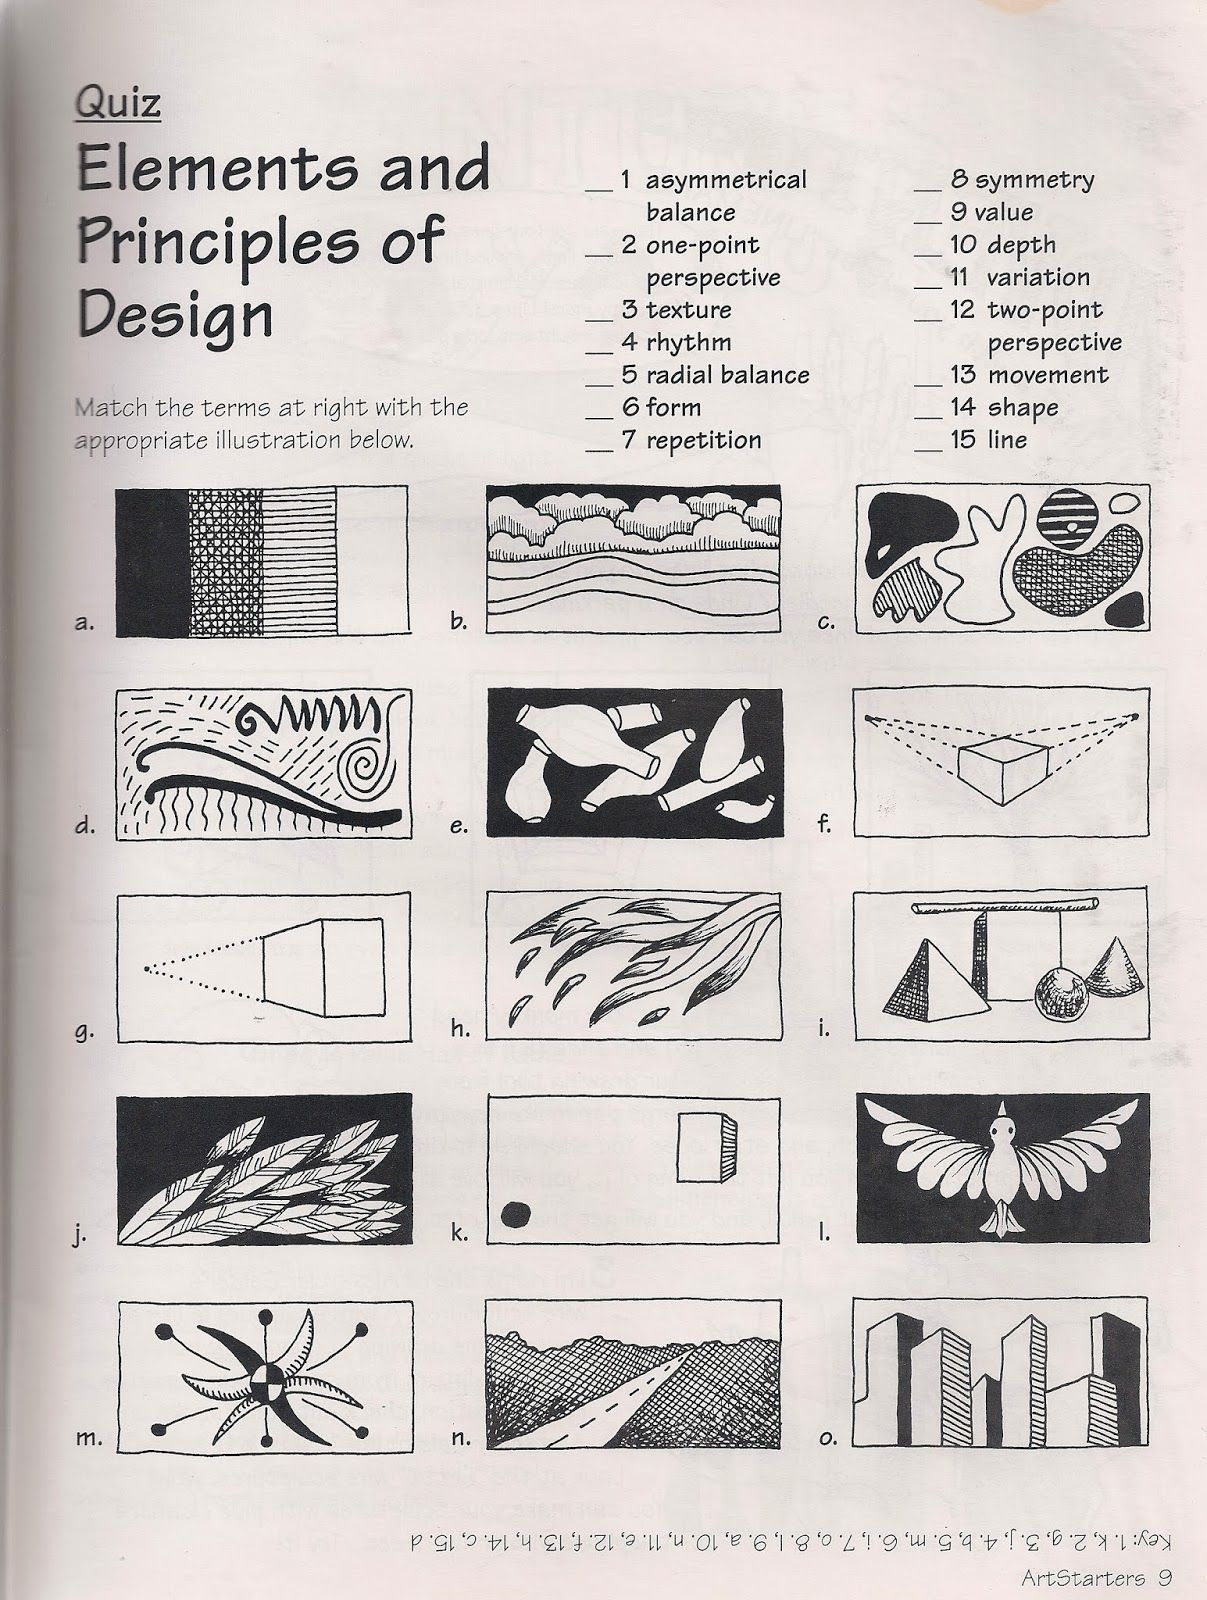 Worksheet Principles Of Design Worksheet 1000 images about elementsprinciples handouts on pinterest art elements sketchbooks and principles of art